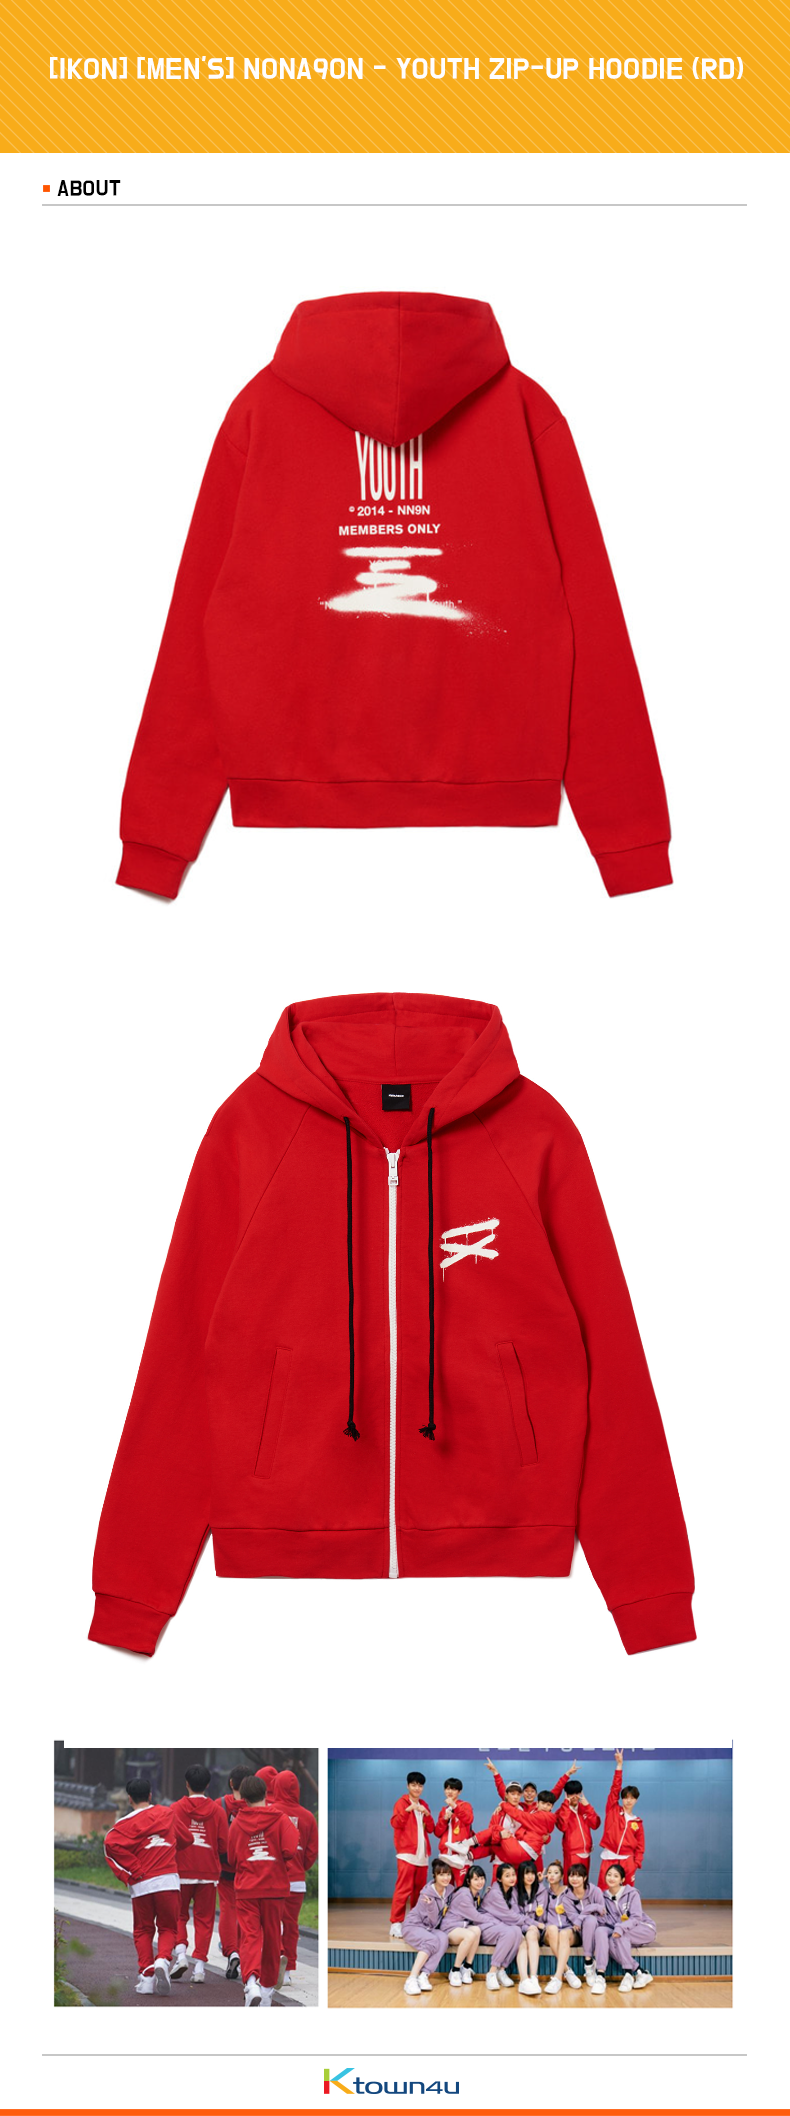 [IKON] [MEN'S] NONA9ON - YOUTH ZIP-UP HOODIE (RD)